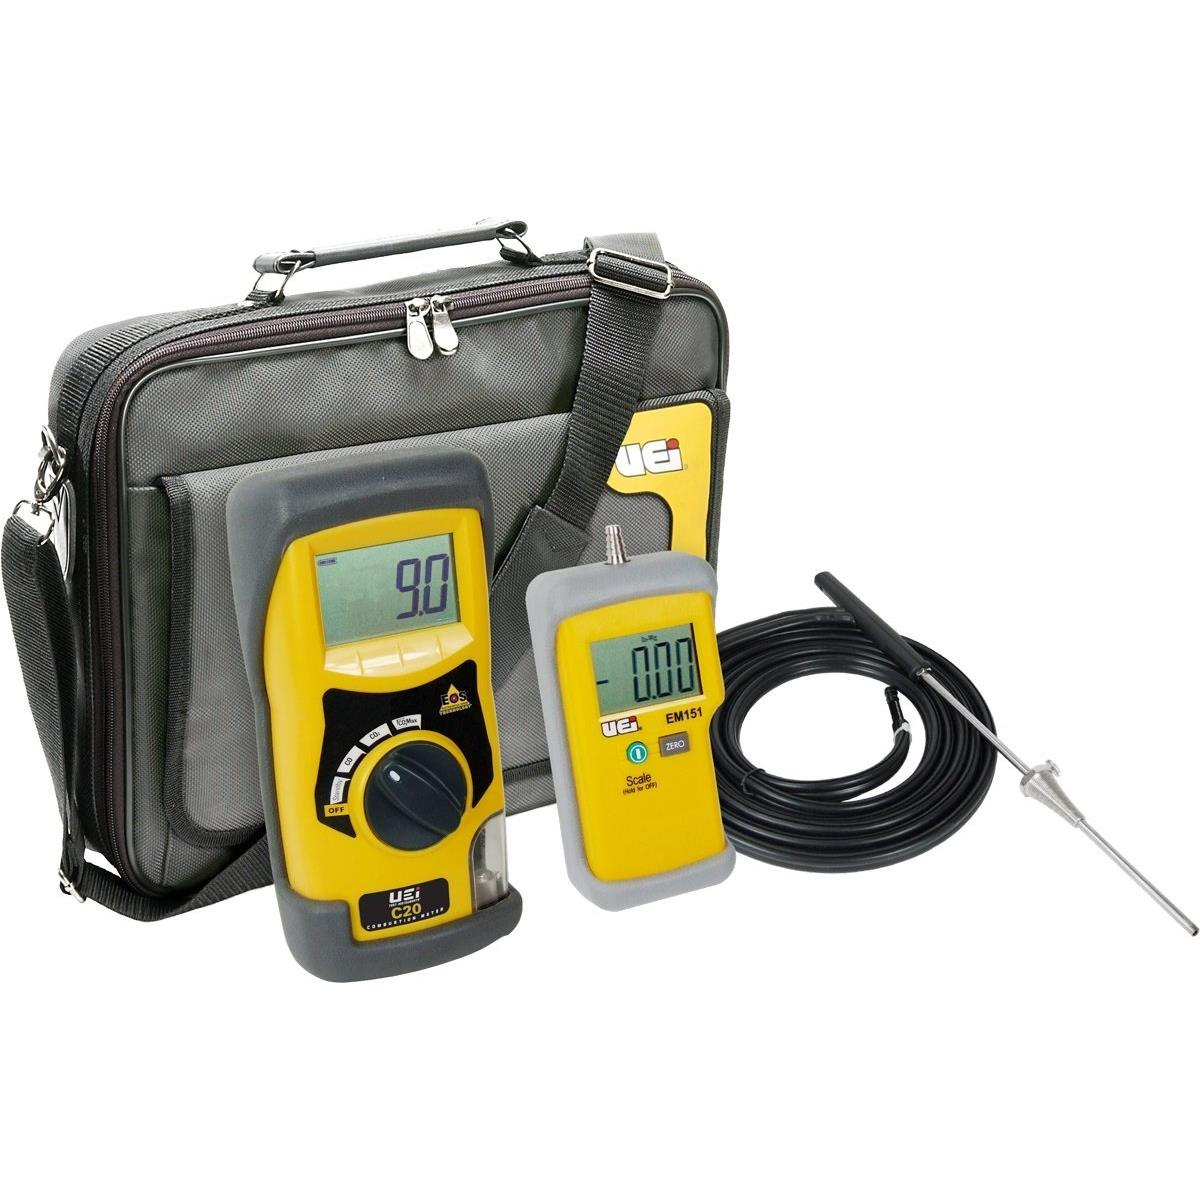 UEi C20KIT Digital Carbon Monoxide and Carbon Dioxide Analyzer Kit